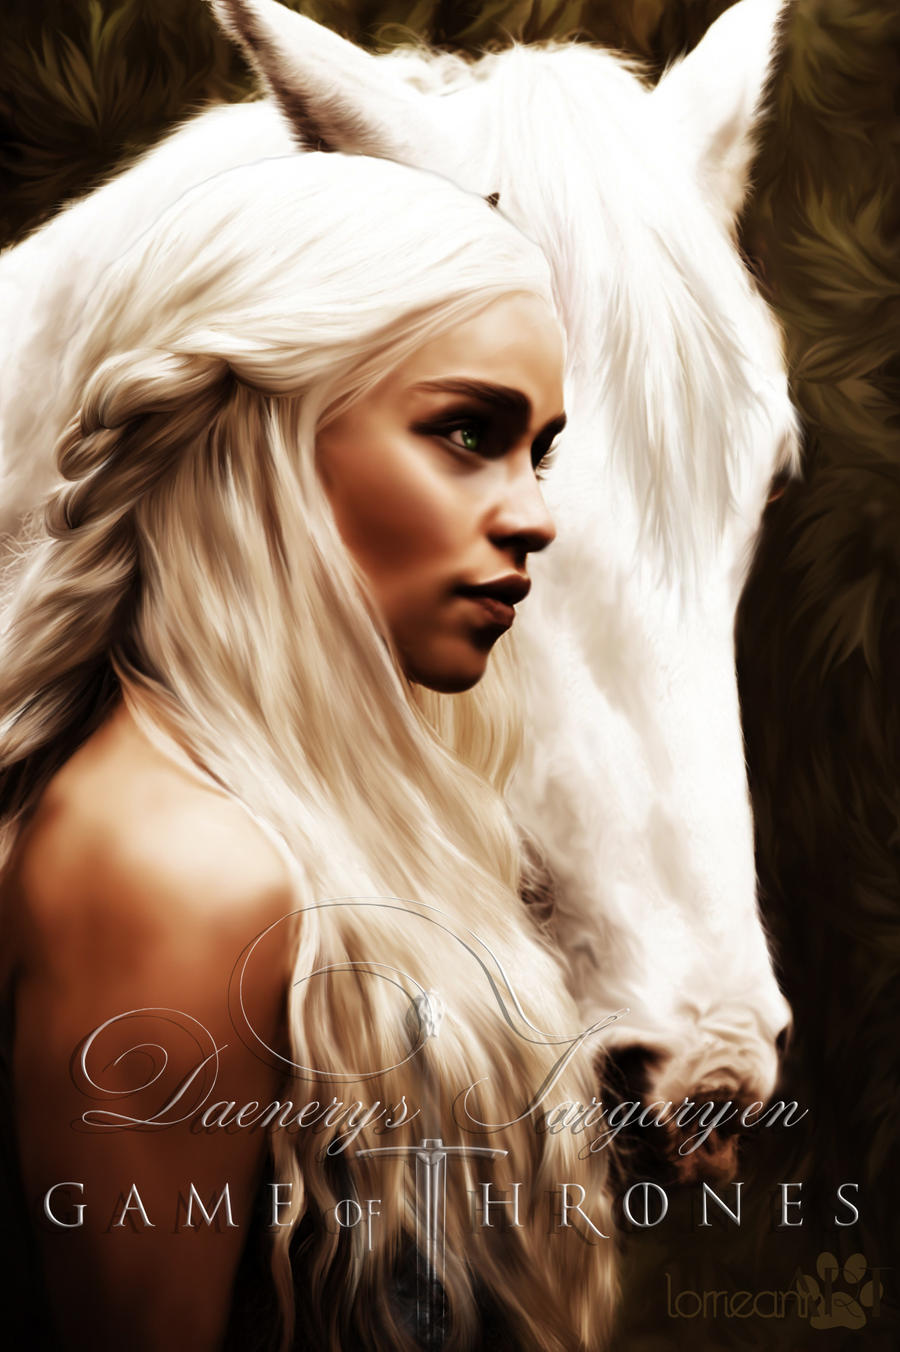 Daenerys Targaryen : Game of Thrones by RottonNymph on ...